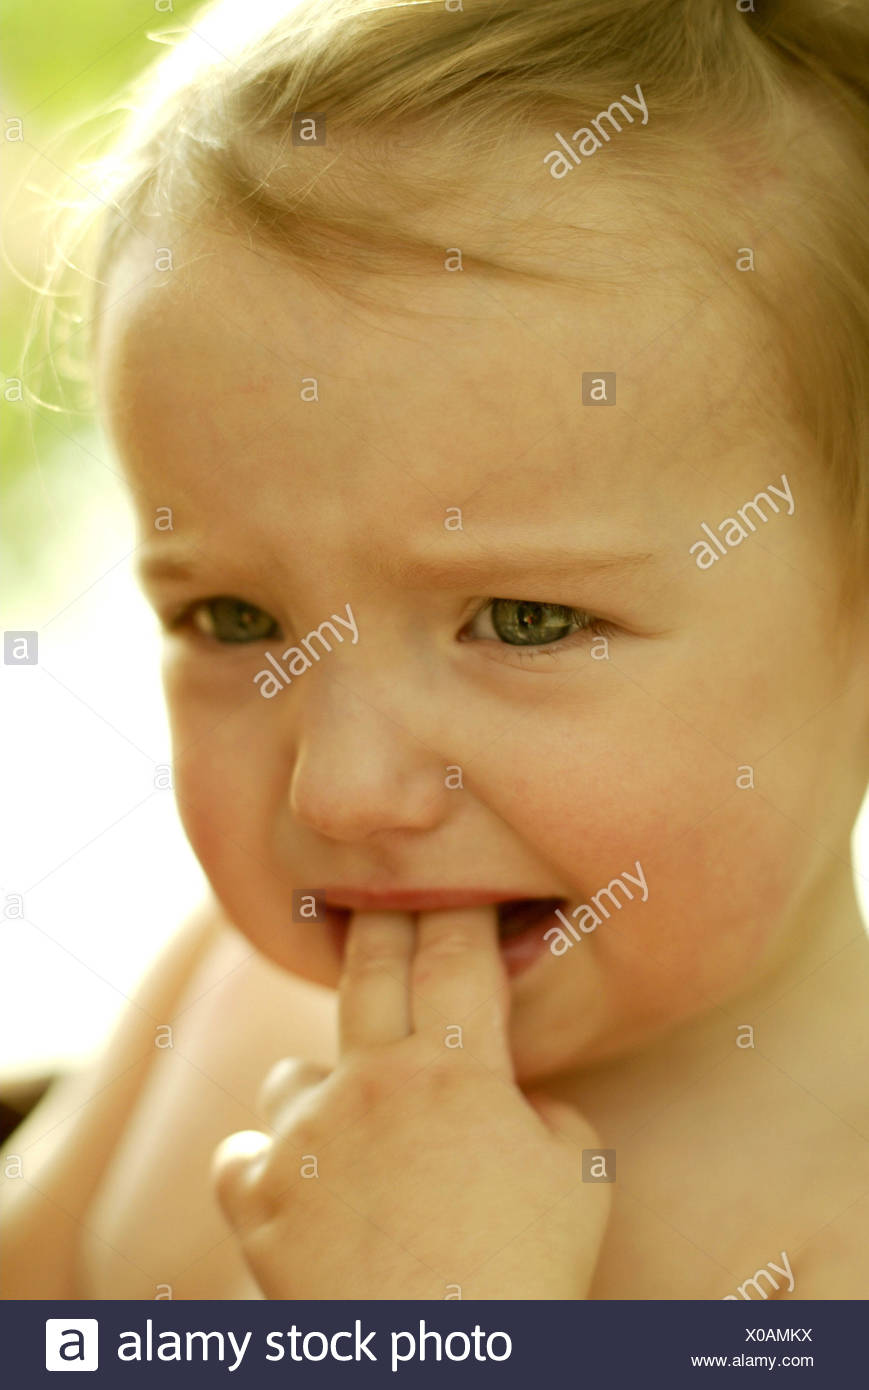 Girls, fingers, mouth, tearful, portrait, curled child portrait, child, 1 - 3 years, infant, blond, expression, unhappily, dissatisfied, discontent, tensely, cry, uncertainly, insecurity - Stock Image